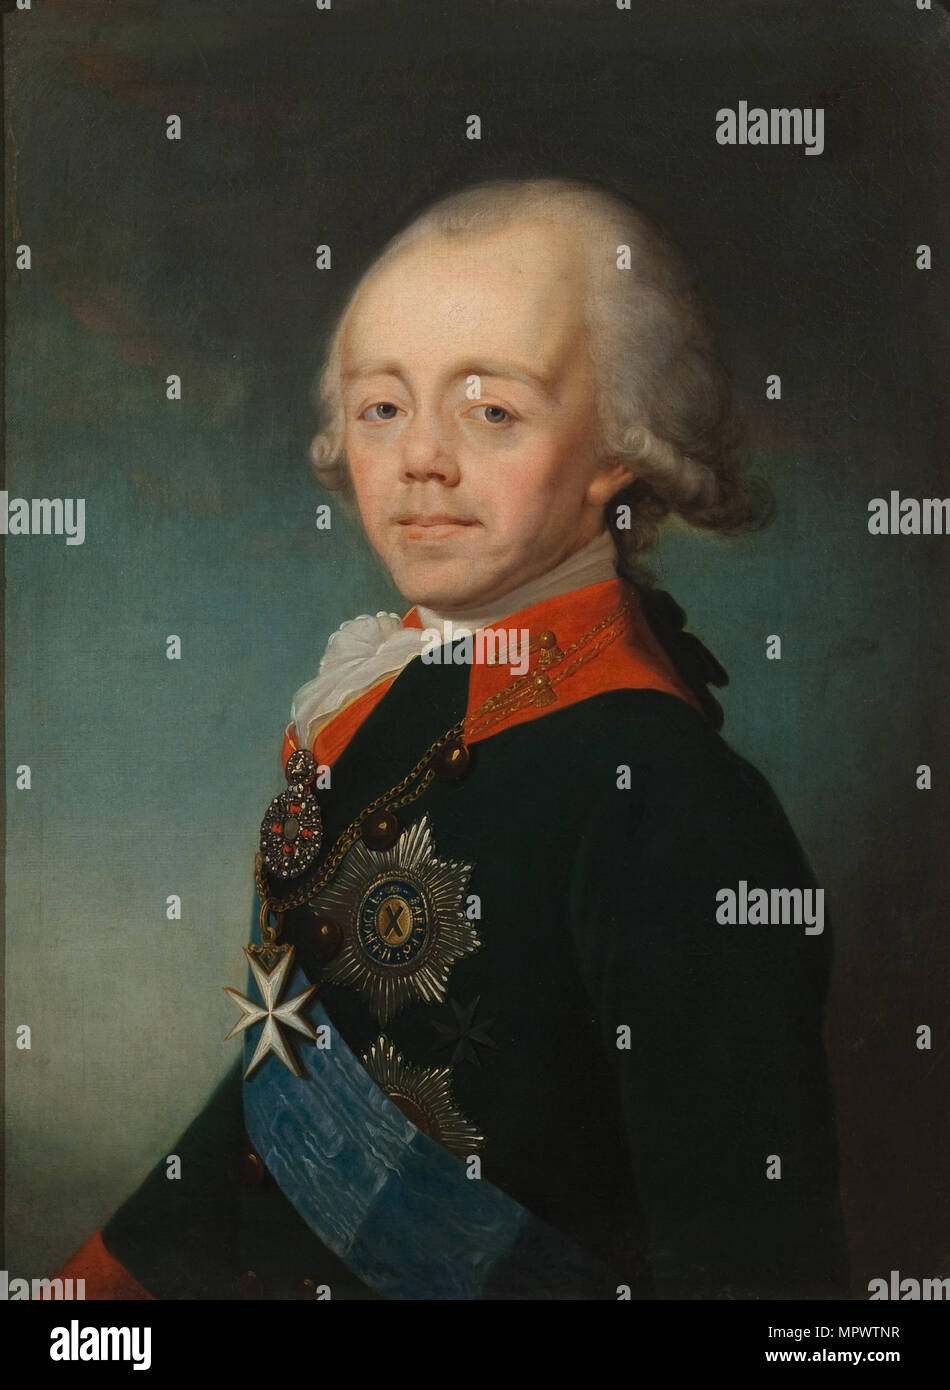 Portrait of the Emperor Paul I of Russia (1754-1801), Early 1790s. - Stock Image